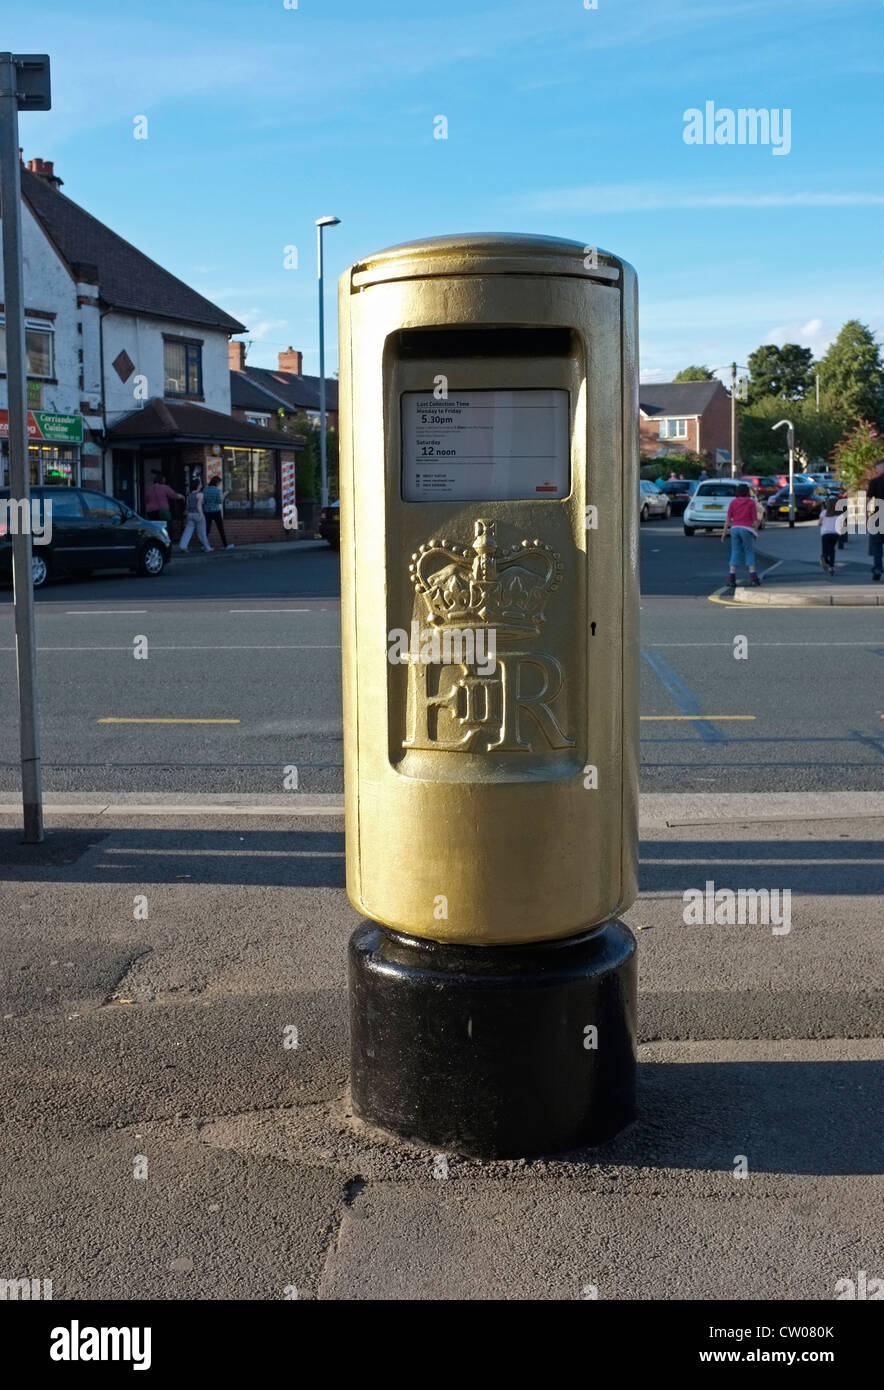 Gold Post Box in New Road Side, Horsforth, Leeds, where Alistair Brownlee lived.  Celebrates his Gold Medal in 2012 - Stock Image